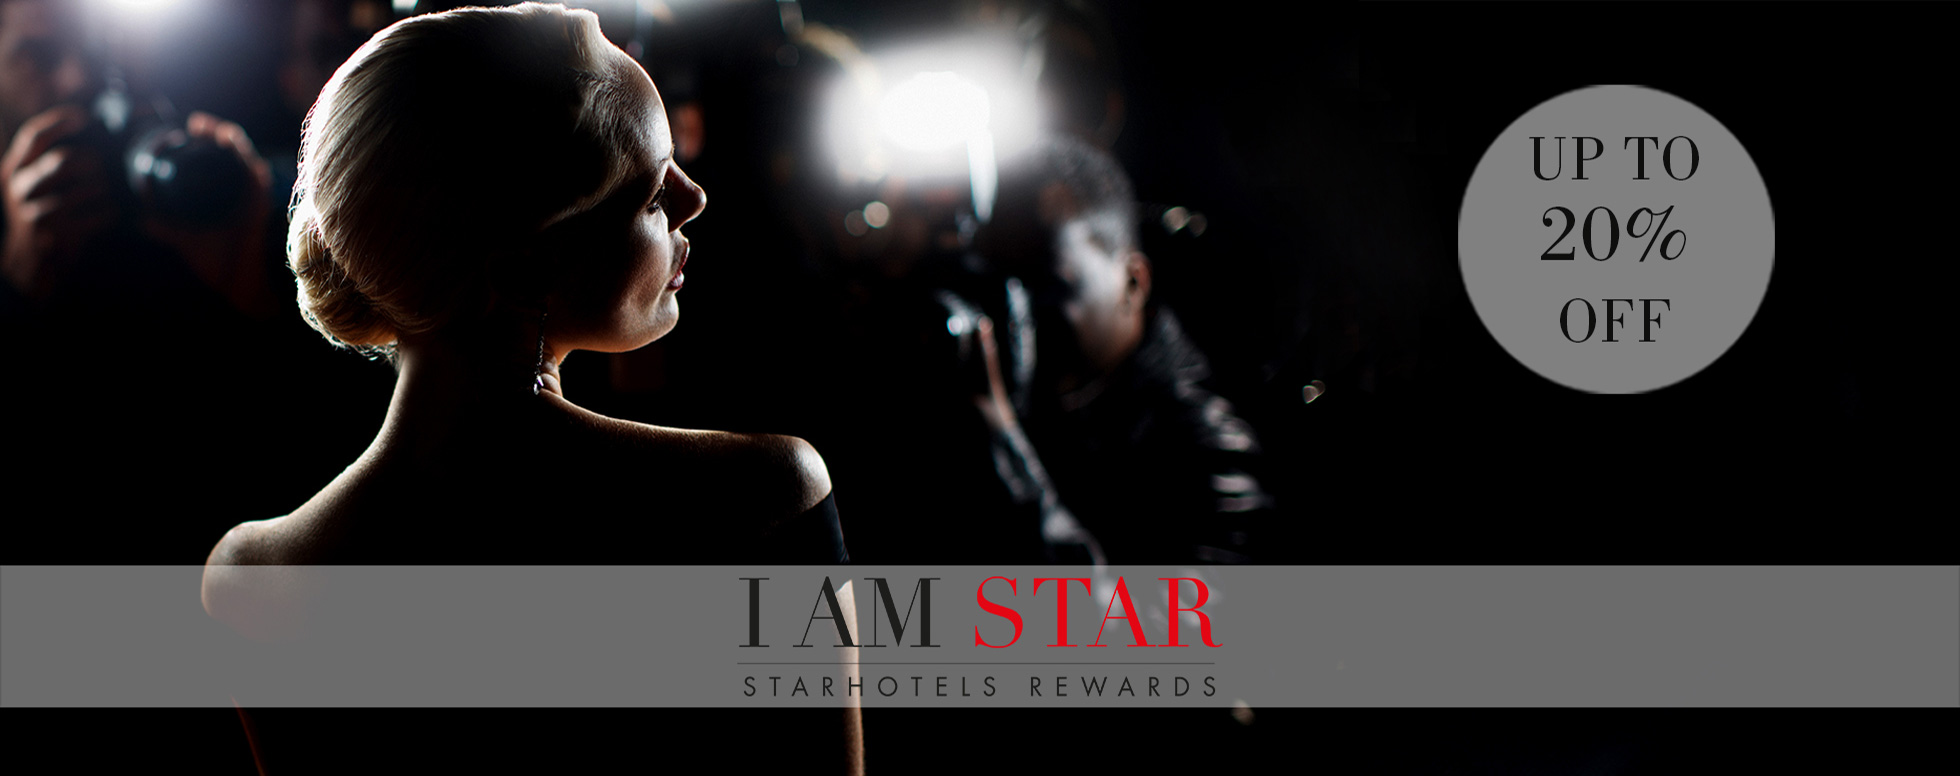 JOIN I AM STAR and get  up to 20% off!